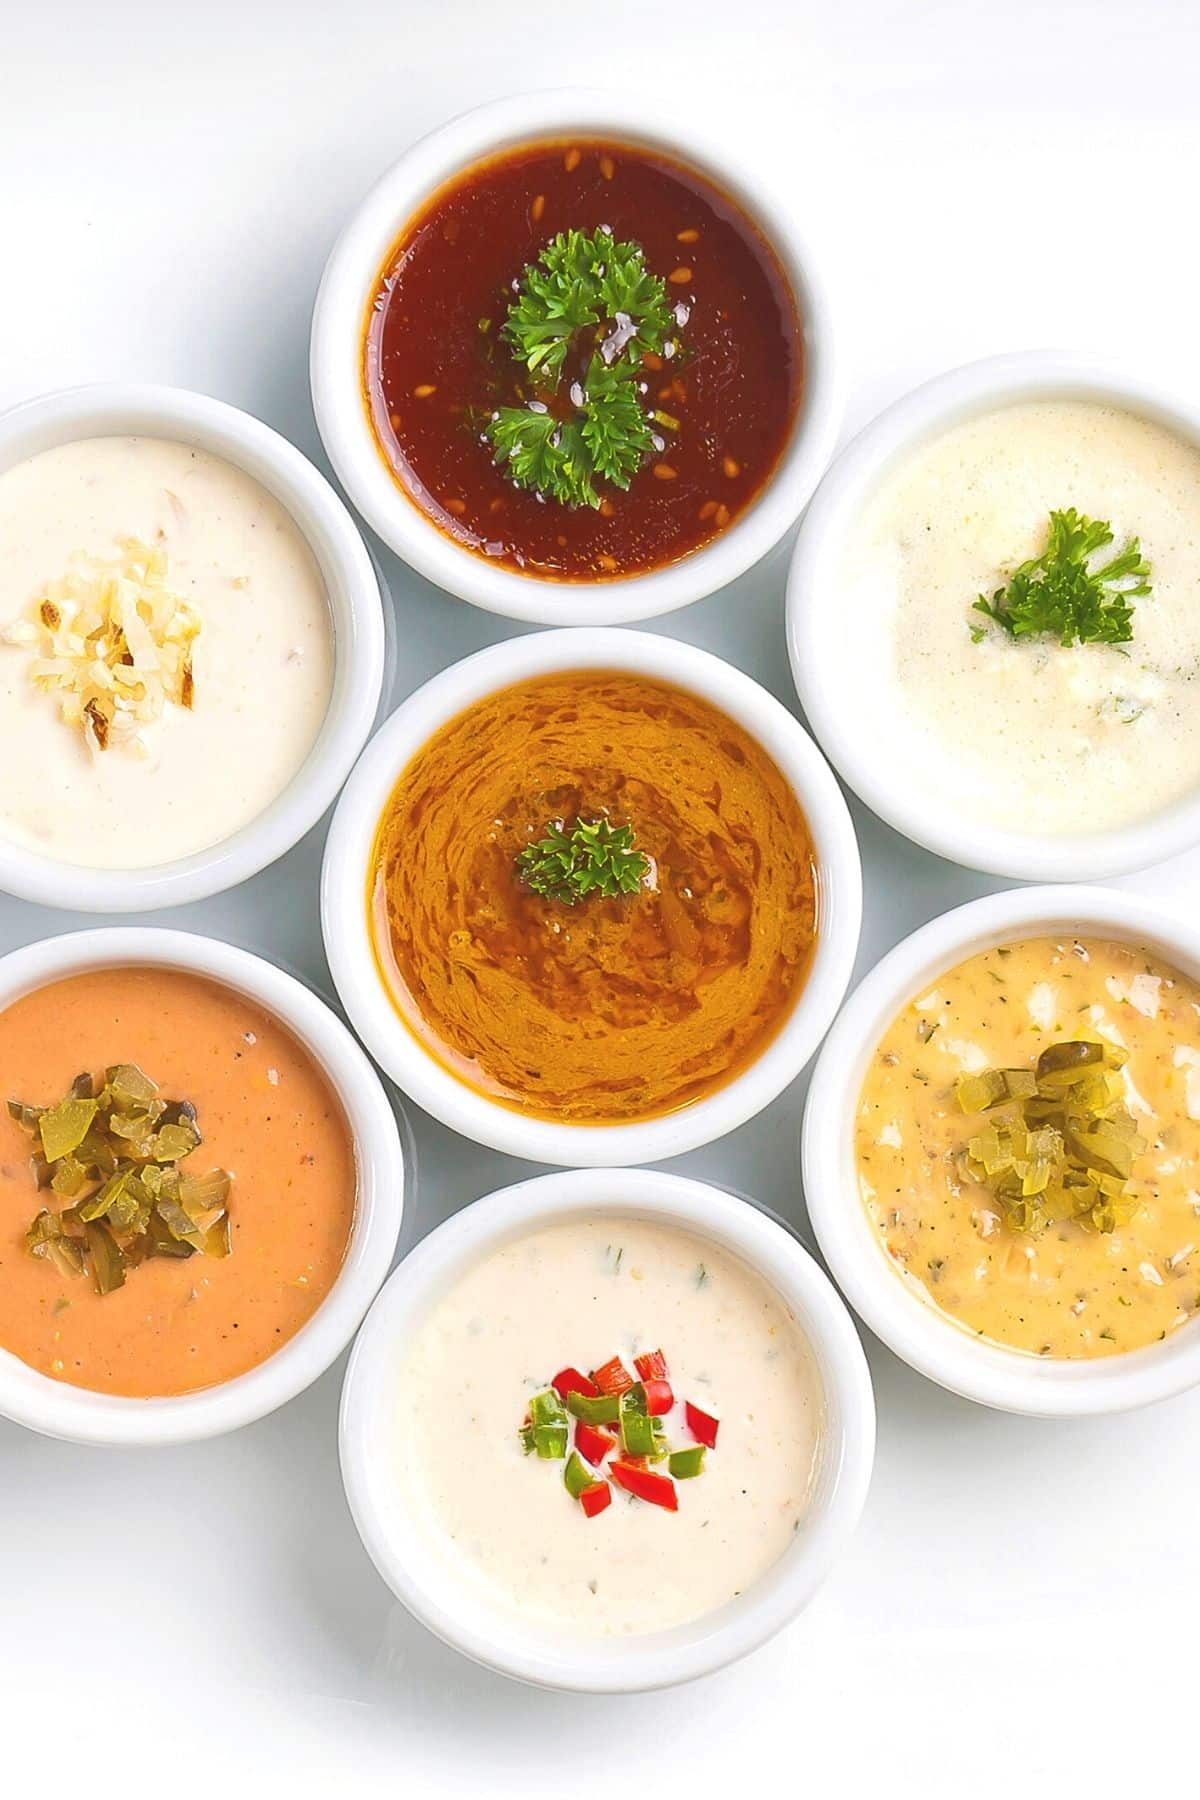 Bowls of different gluten free sauces